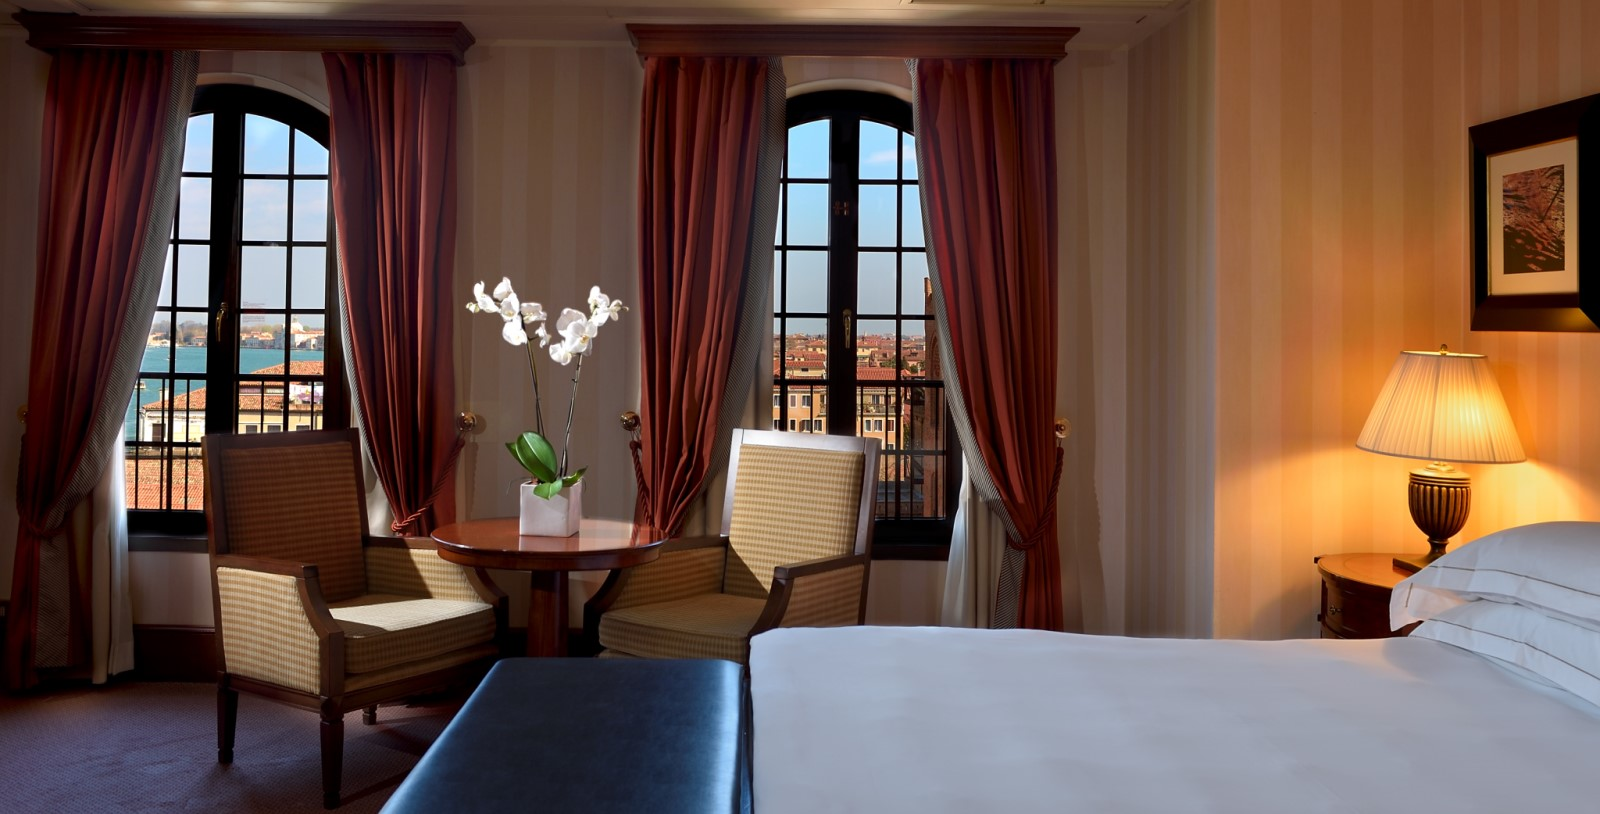 Image of Guestroom Interior, Hilton Molino Stucky Venice, Italy, 1884, Member of Historic Hotels Worldwide, Accommodations